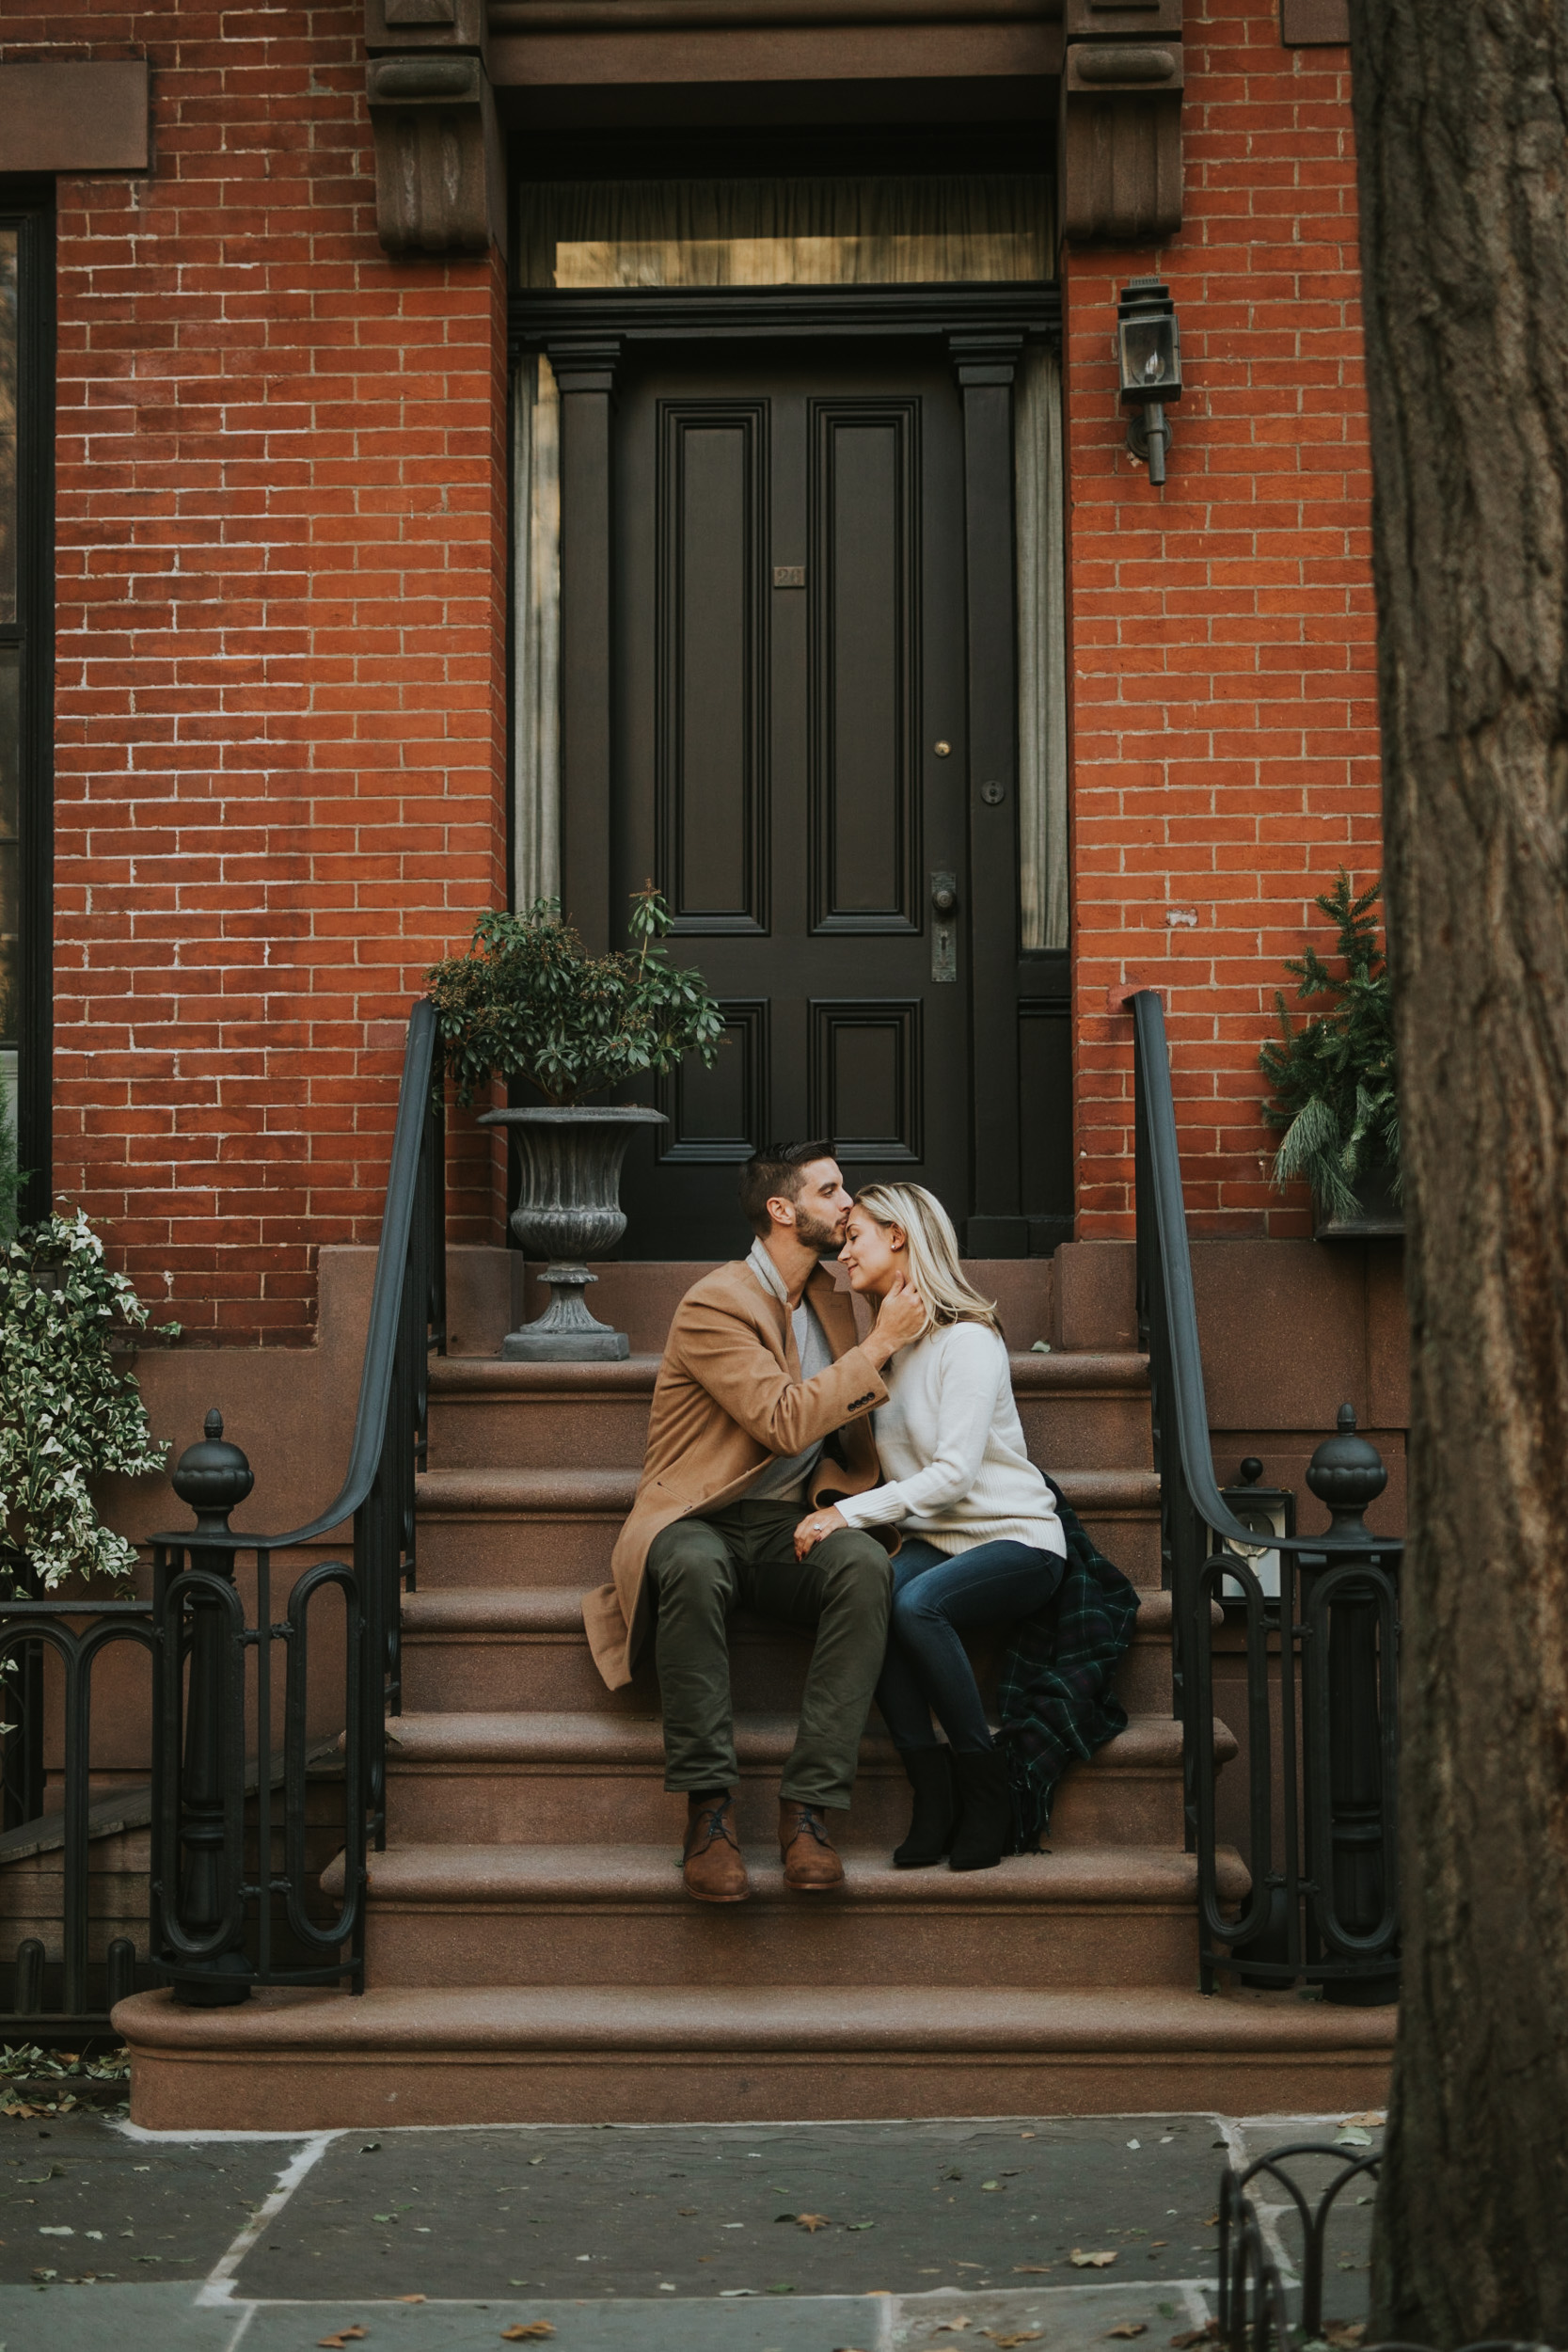 Colorful Fall NYC Engagement Session_Polly C Photography 1721151433.jpg